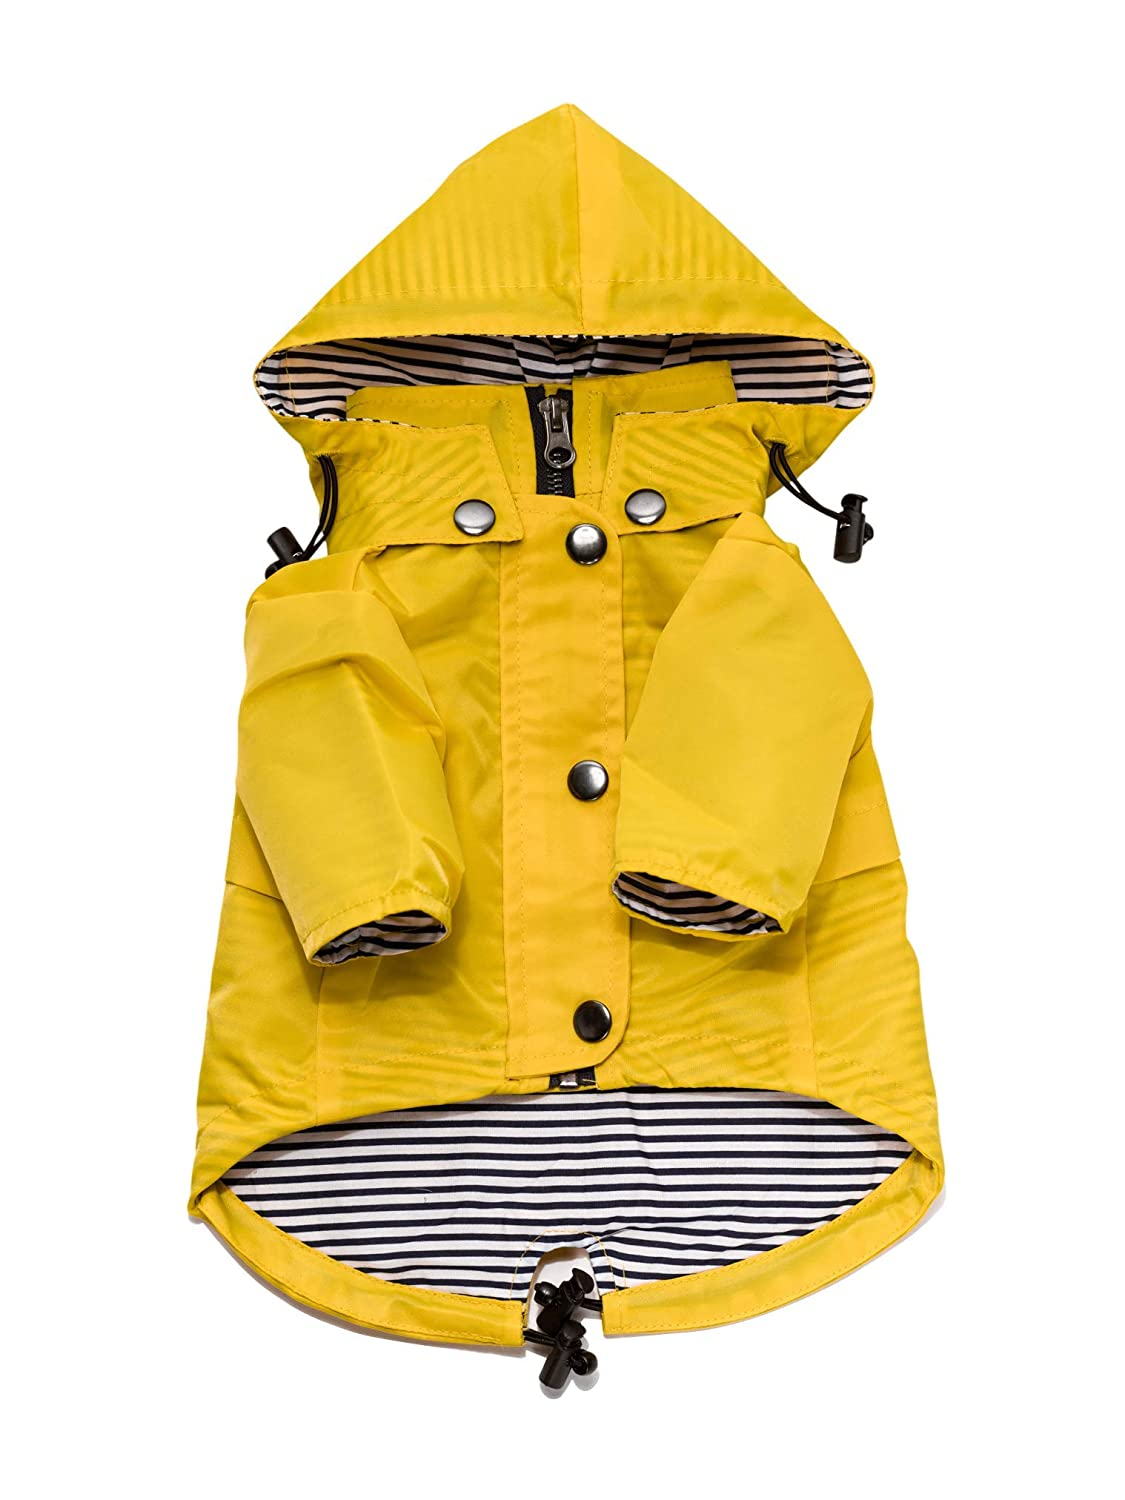 7230492d75ce3 Ellie Dog Wear Yellow Zip Up Dog Raincoat with Reflective Buttons, Pockets,  Rain/Water Resistant, Adjustable Drawstring, Removable Hood - Size XS to  XXL ...